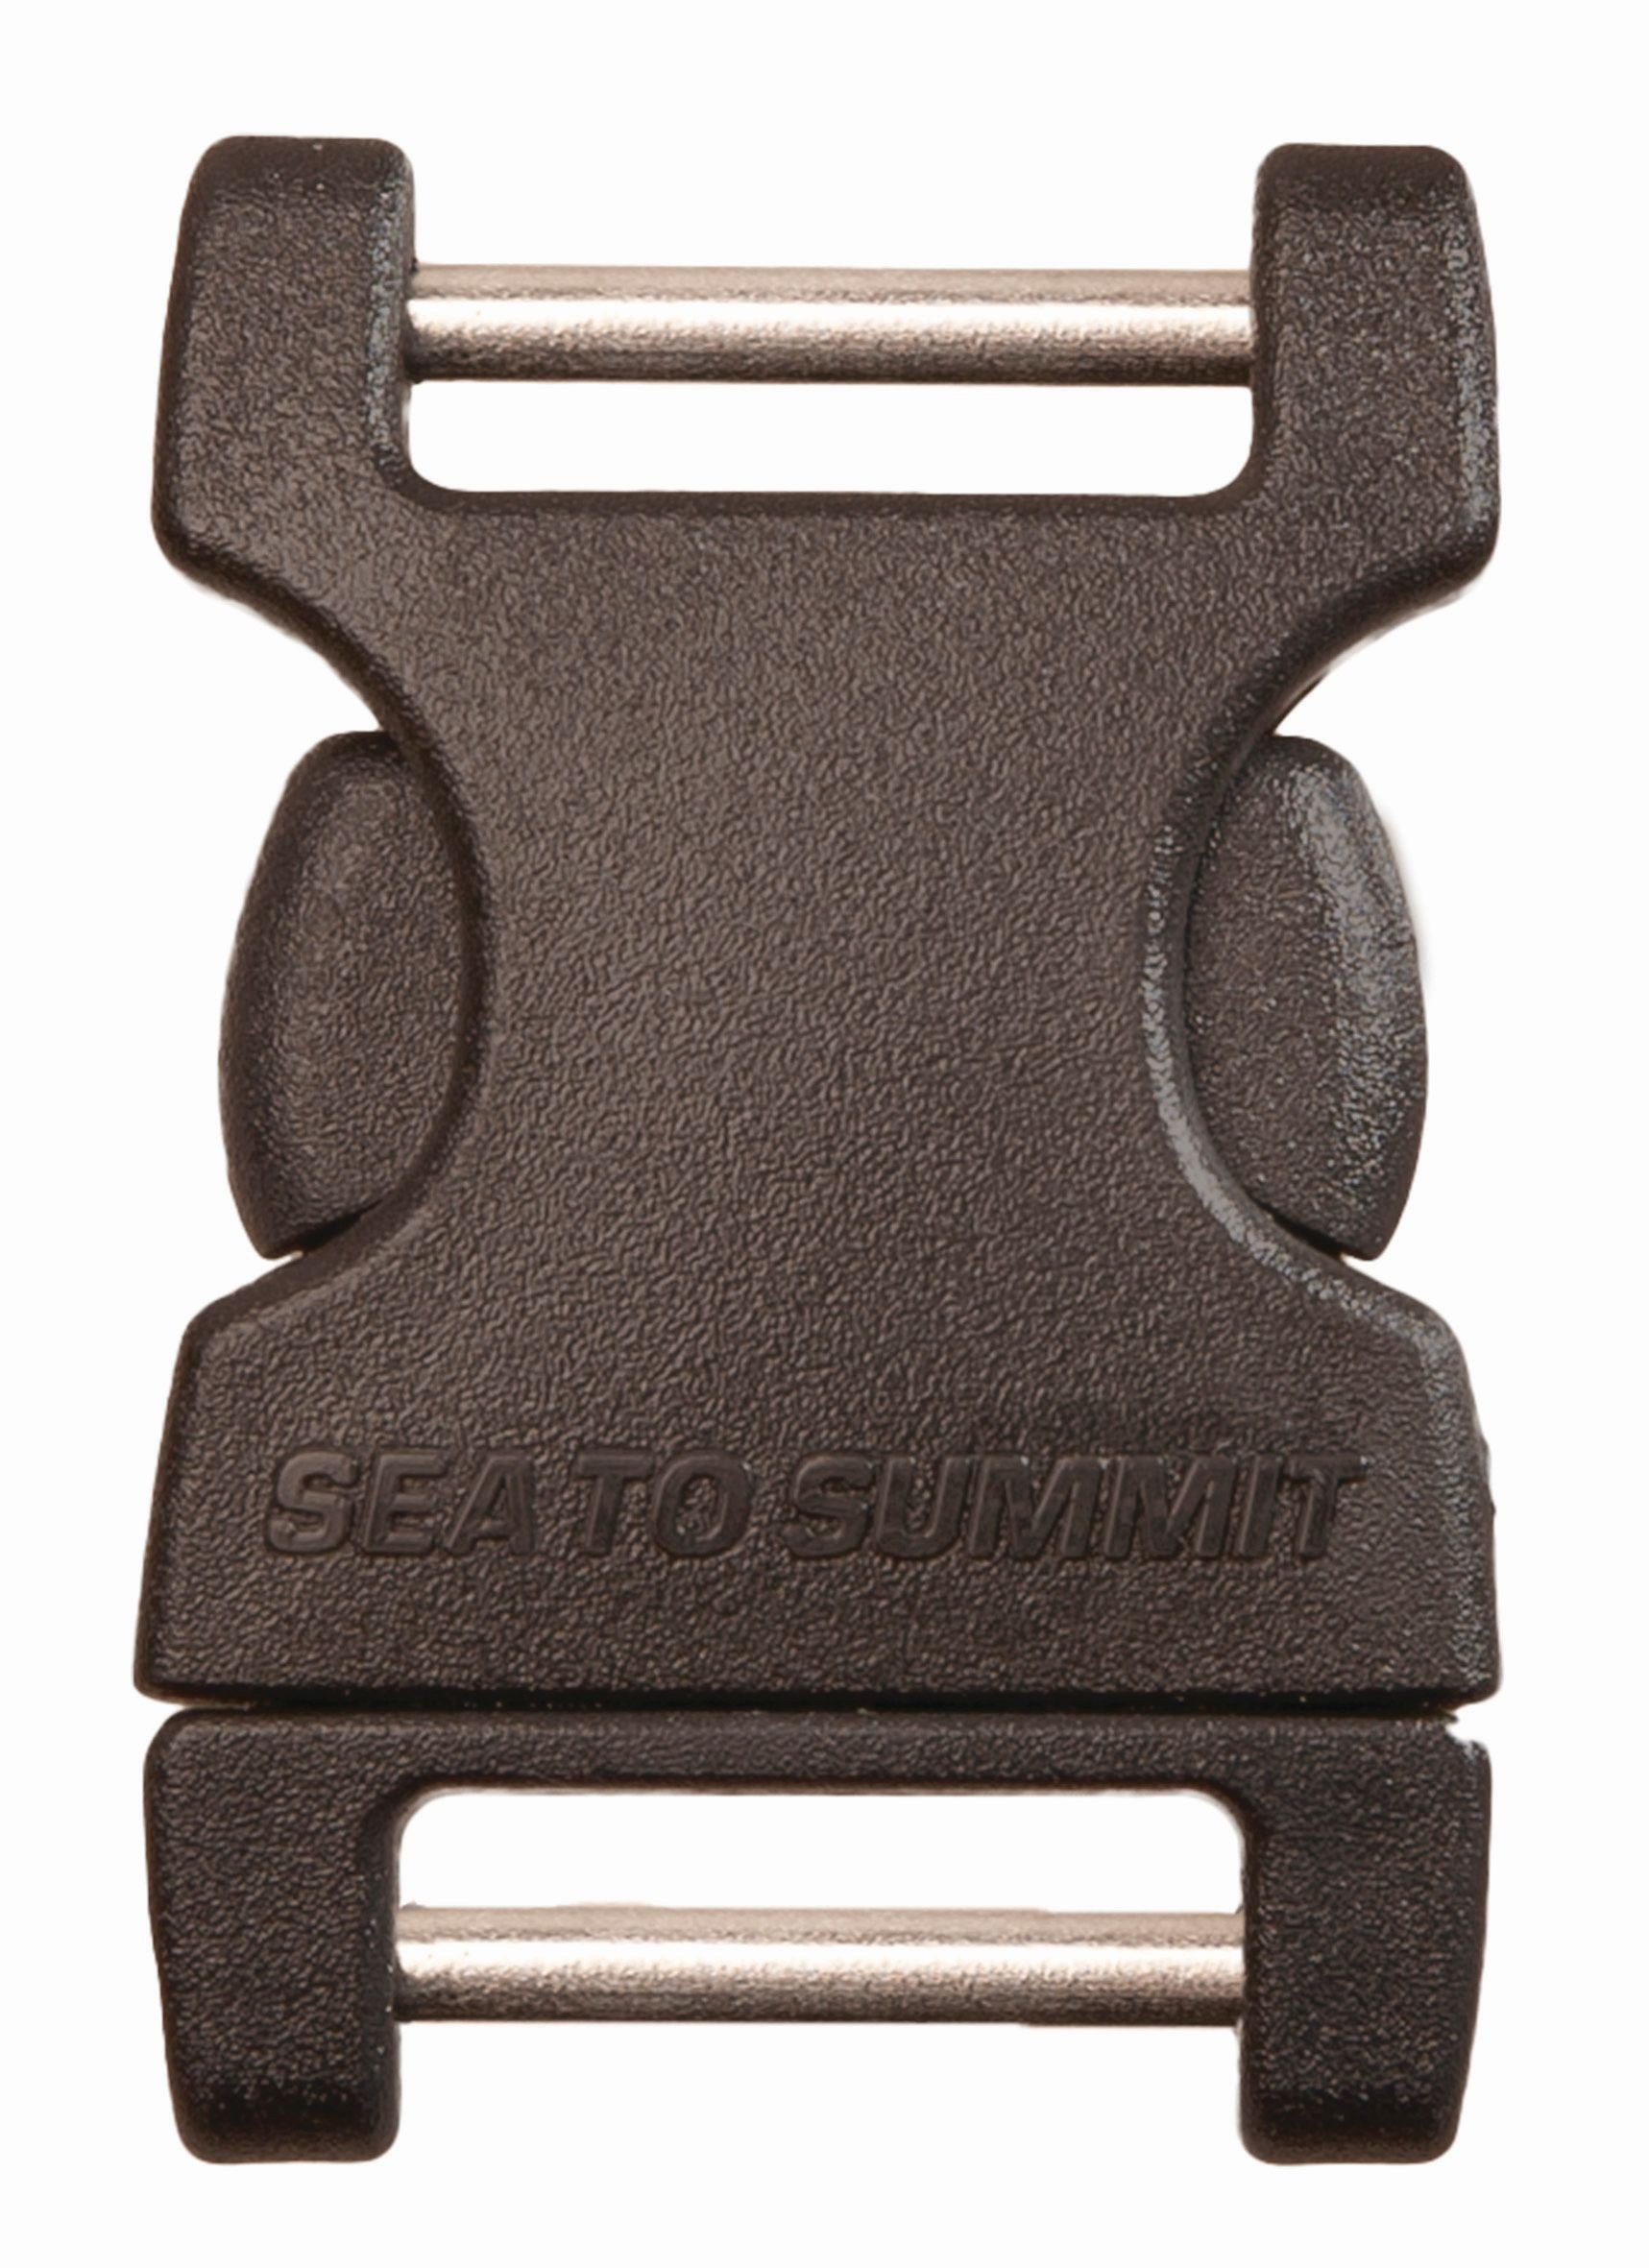 Sea To Summit Field Repair Buckle - 38mm Side Release 2 Pin